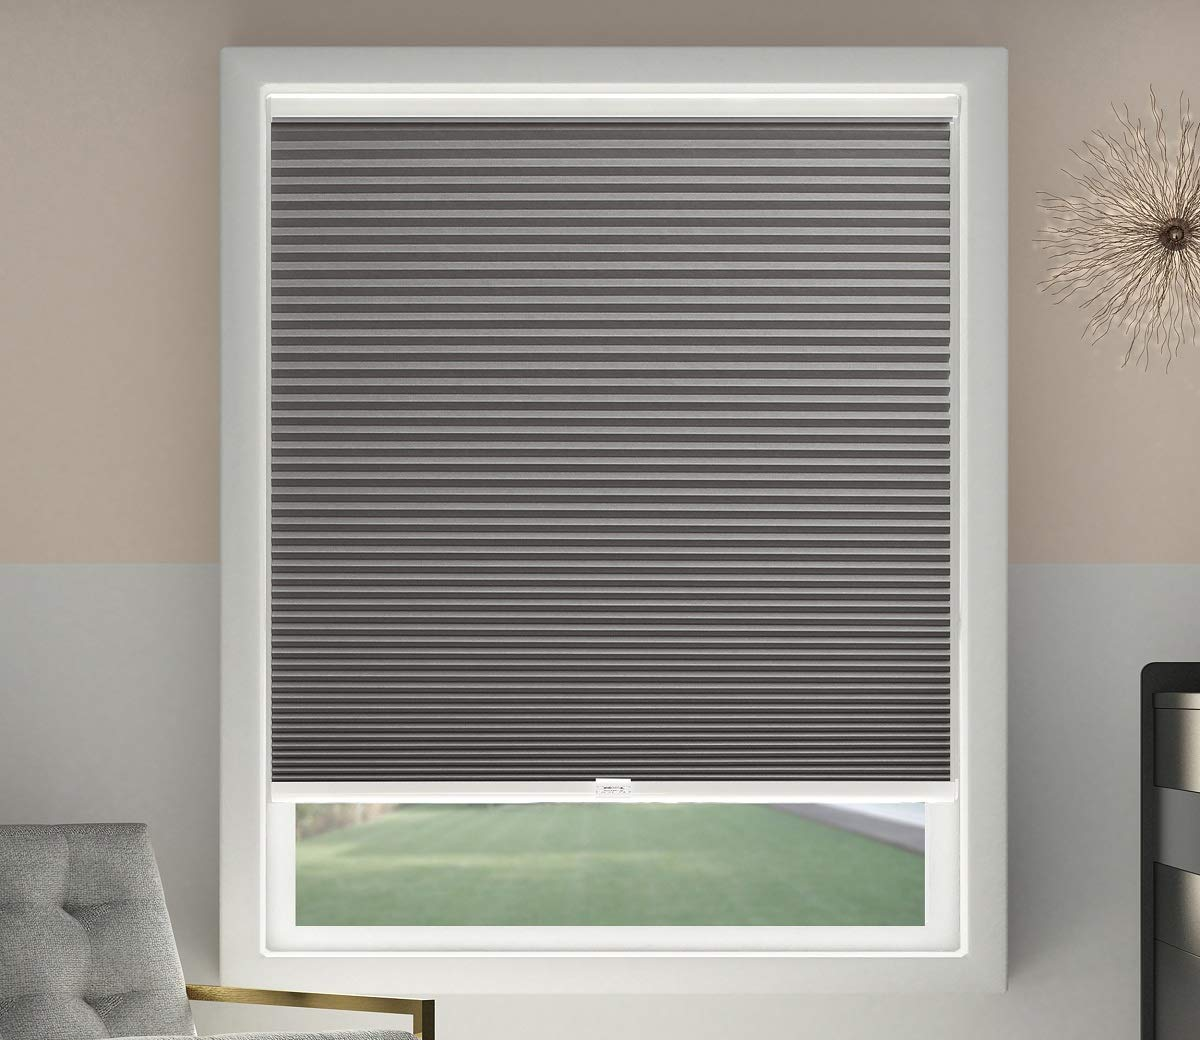 Foil-lined, chambered blinds can keep out huge amounts of light and heat.